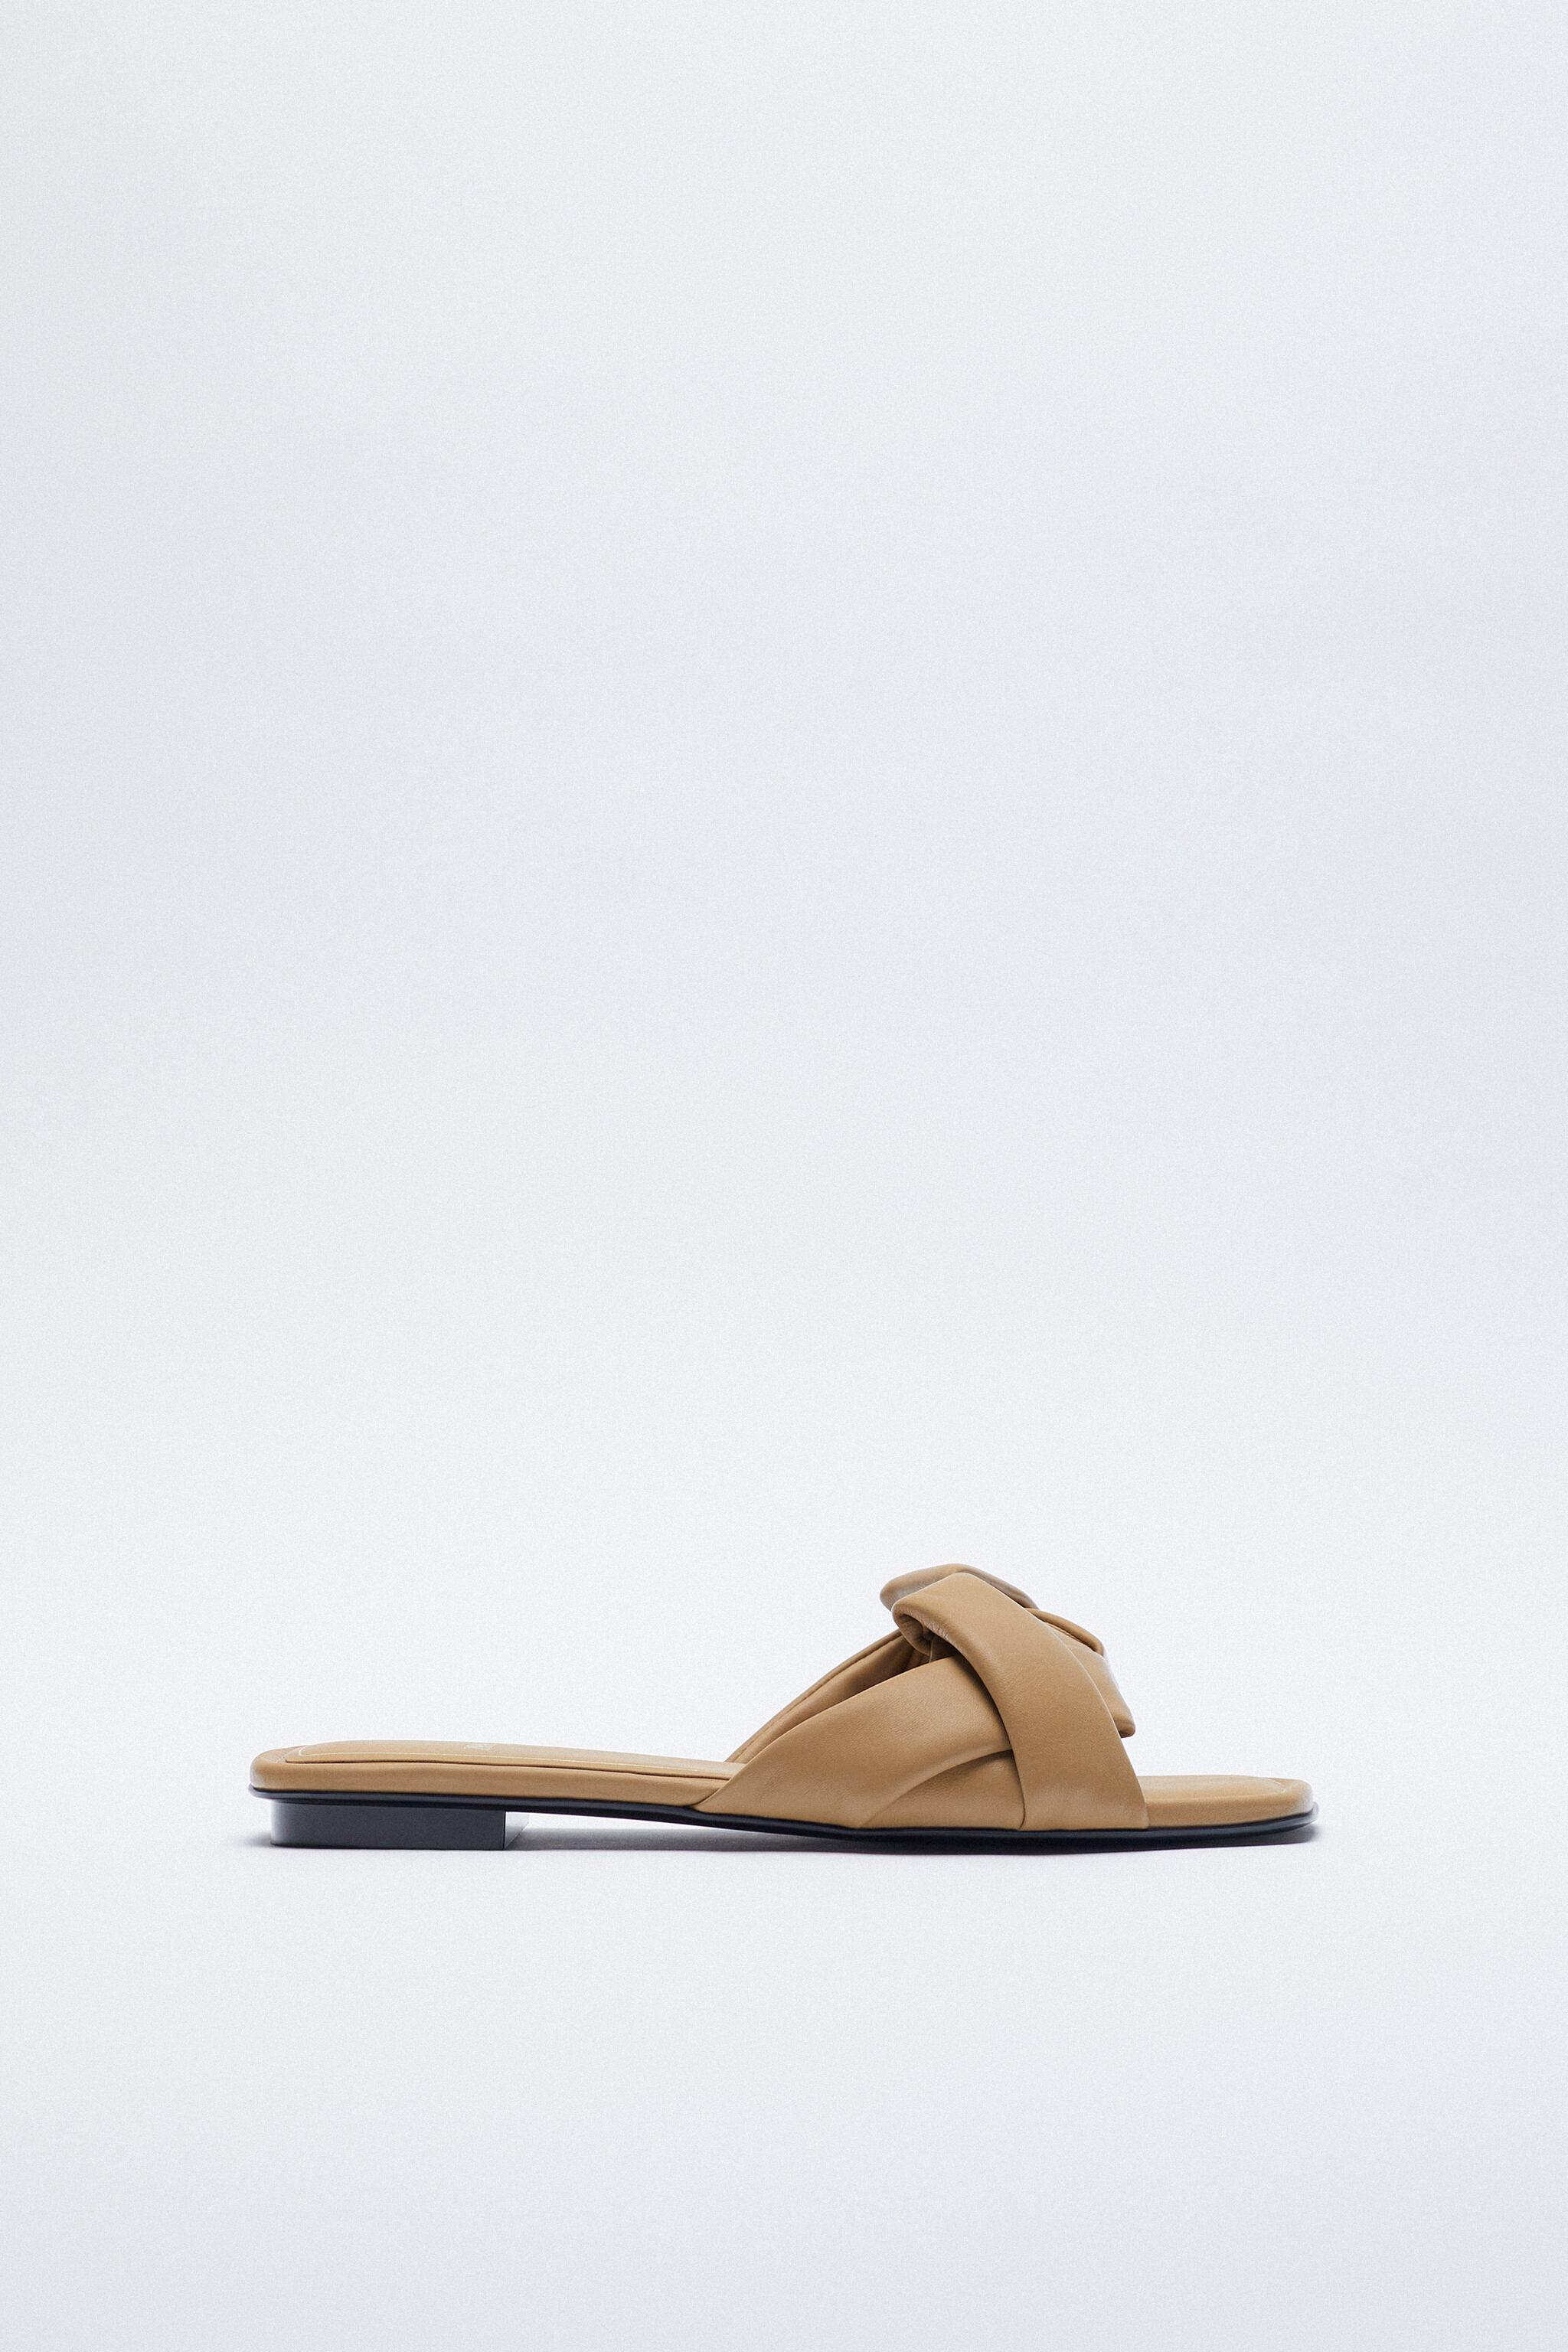 WOVEN FLAT LEATHER SANDALS